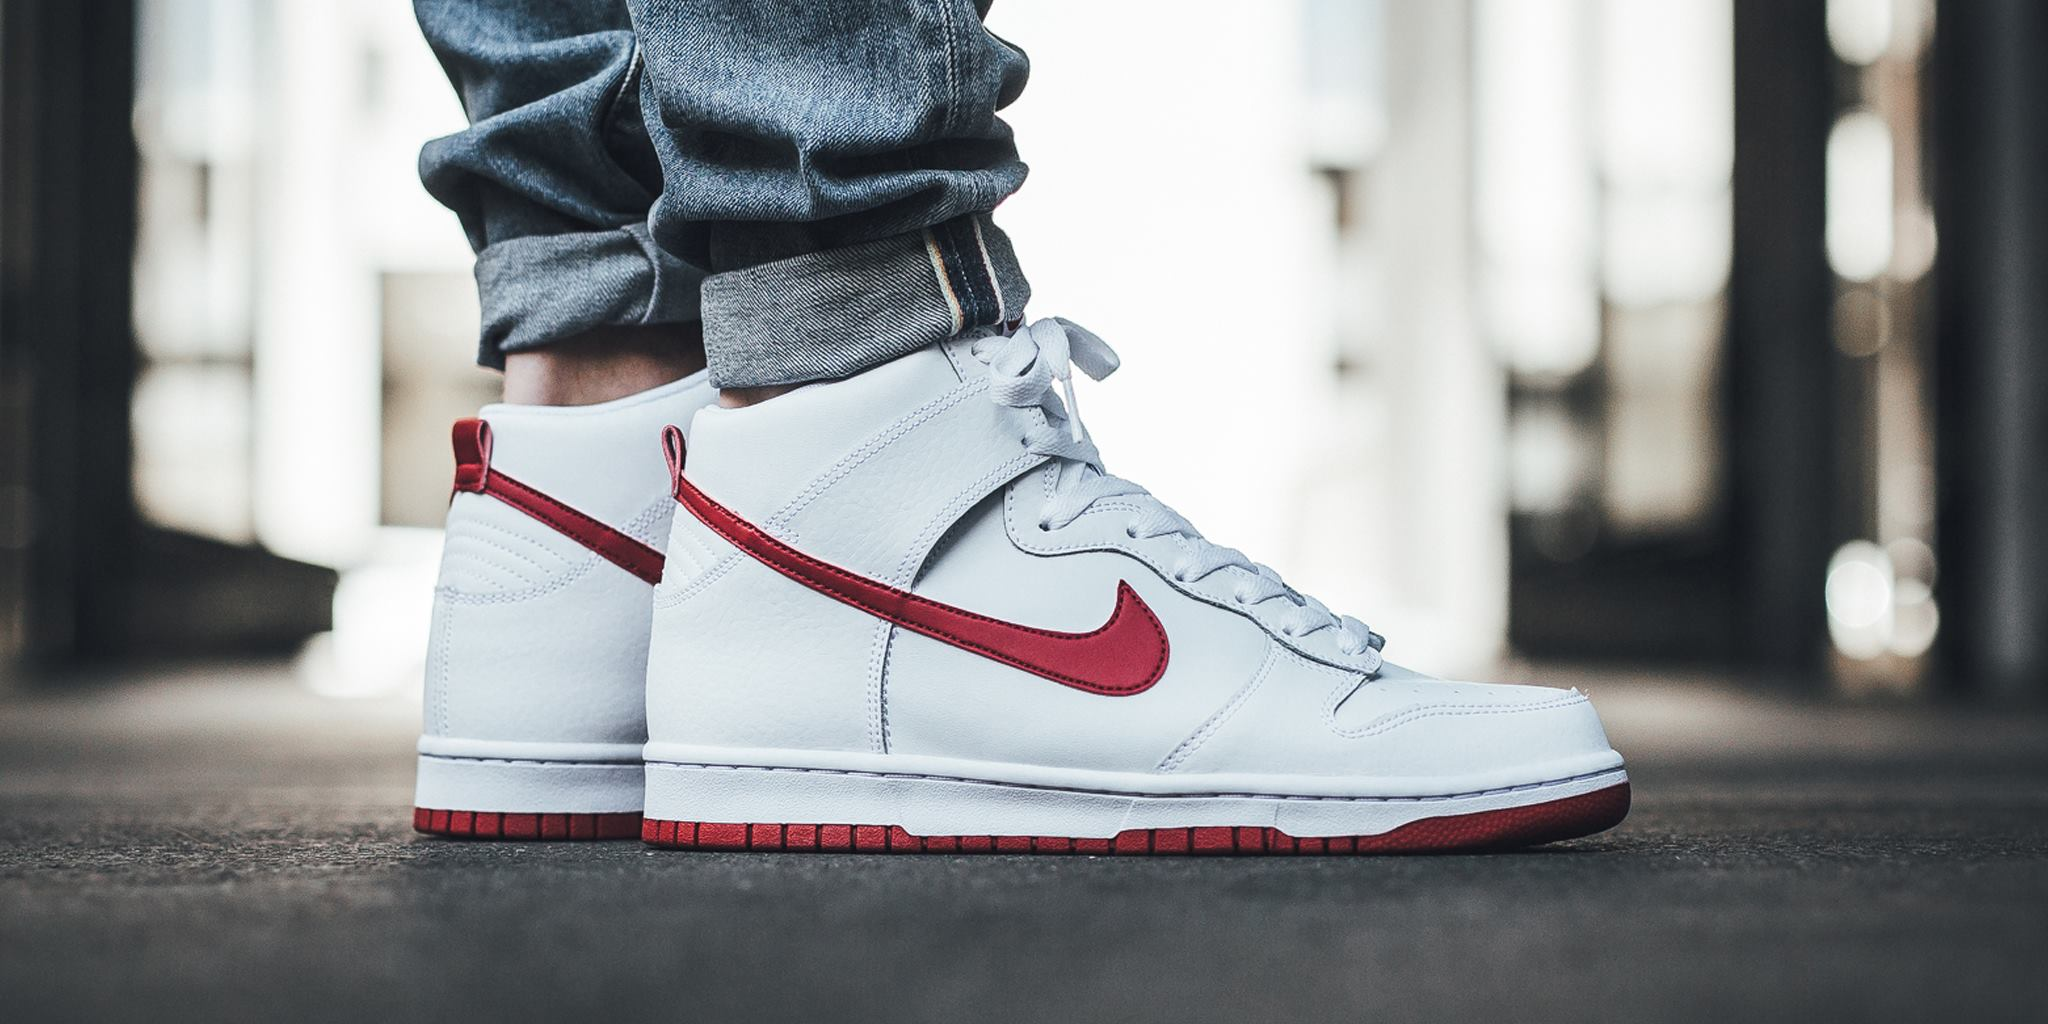 quality design a00e6 a4186 Now Available: Nike Dunk High White Gym Red • KicksOnFire.com